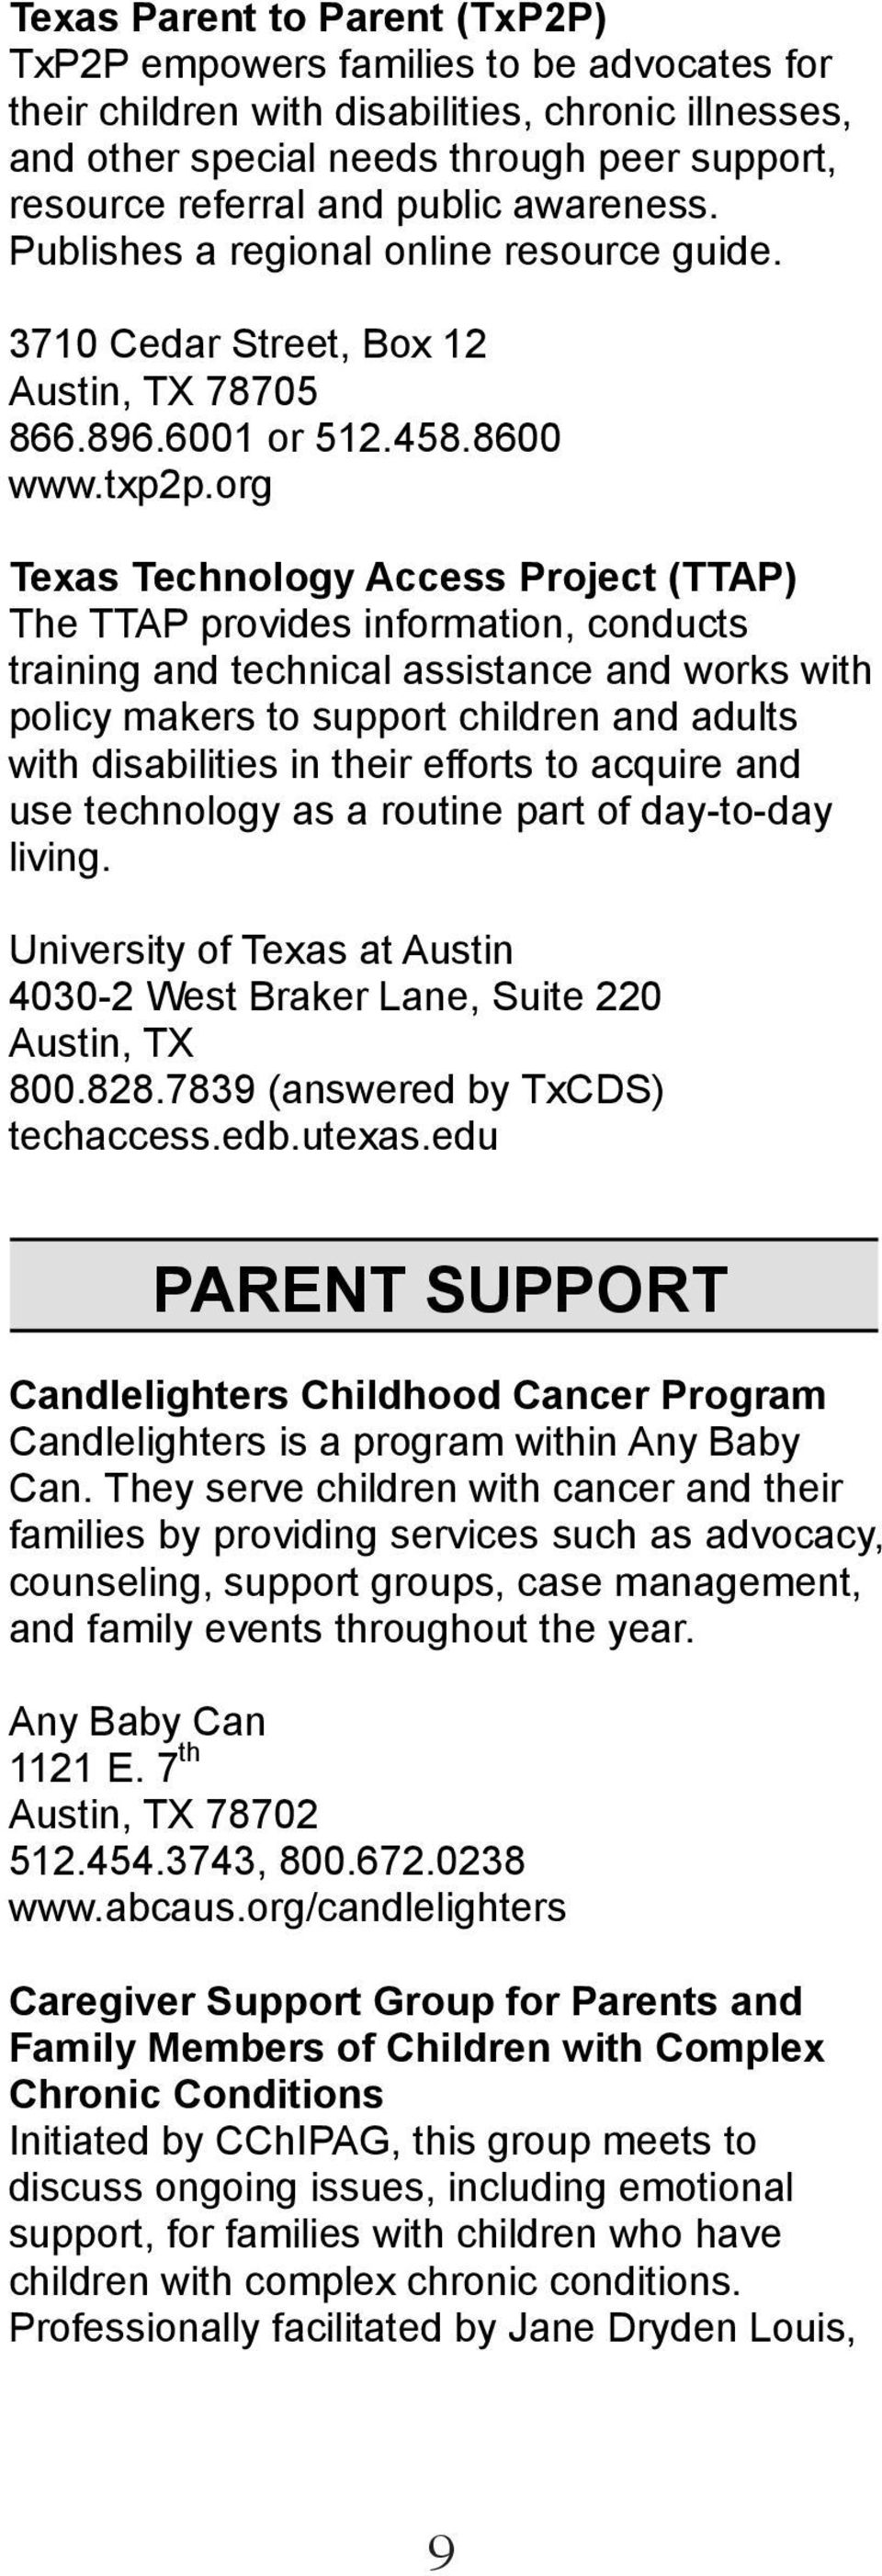 austin area resource guide for children with special needs pdf rh docplayer net Case Management Resource Guide Resource Guides for Youth Services